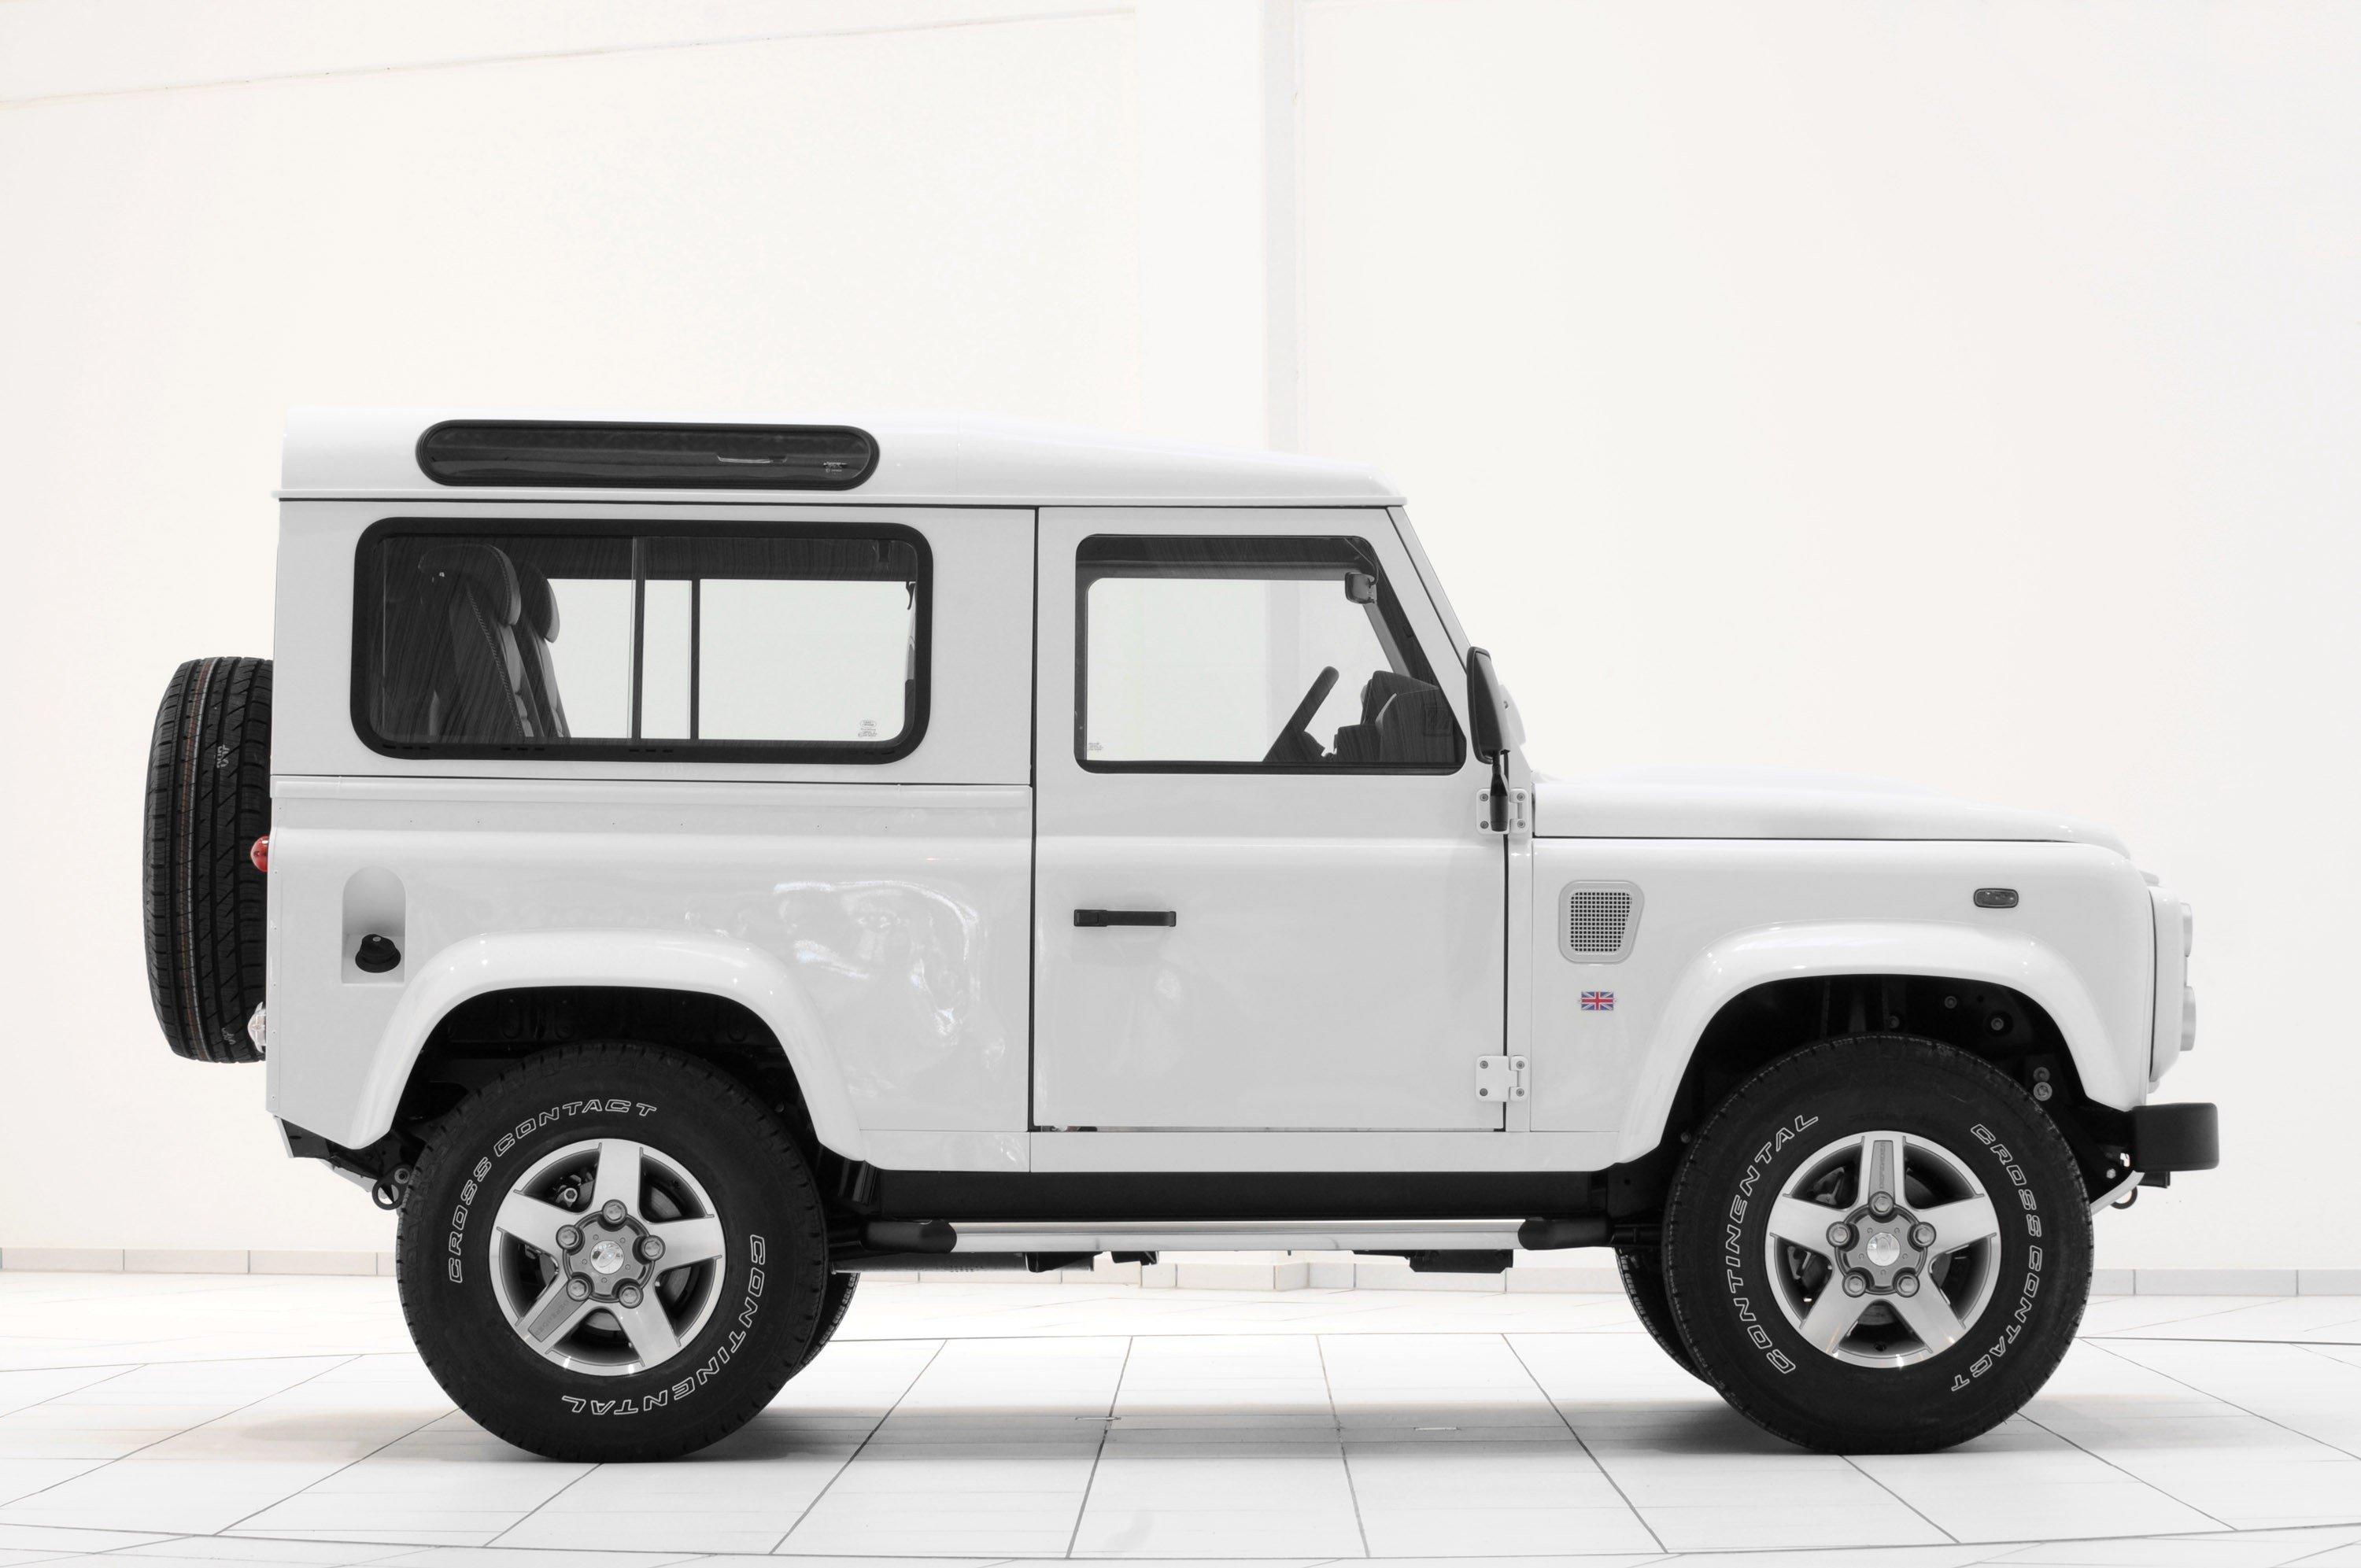 New Startech Land Rover Defender 90 Yachting Edition Picture On This Month